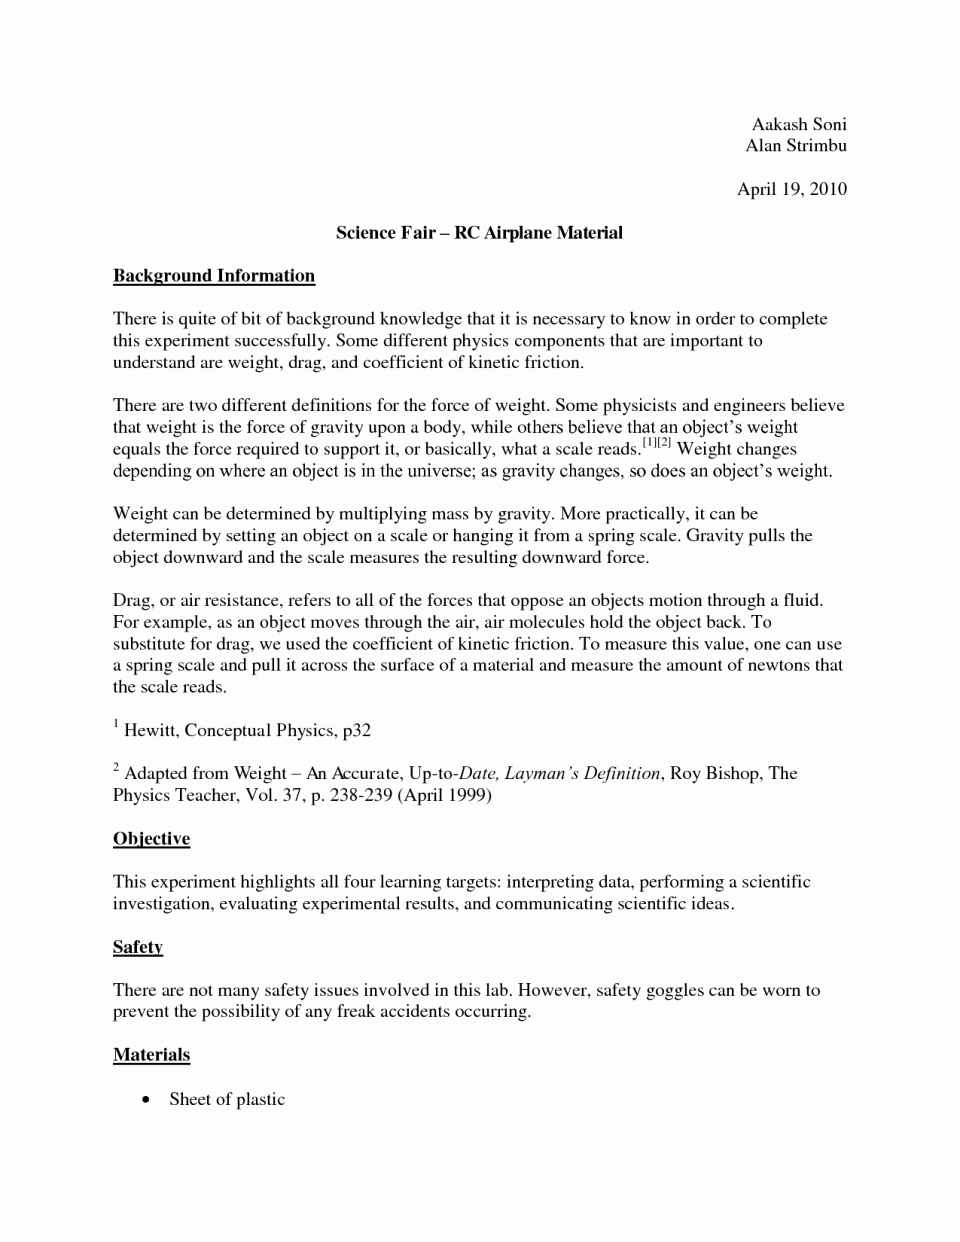 Science Fair Project Template Best Of Image 2dxfjbknce Fair Lab Report Example Research Paper